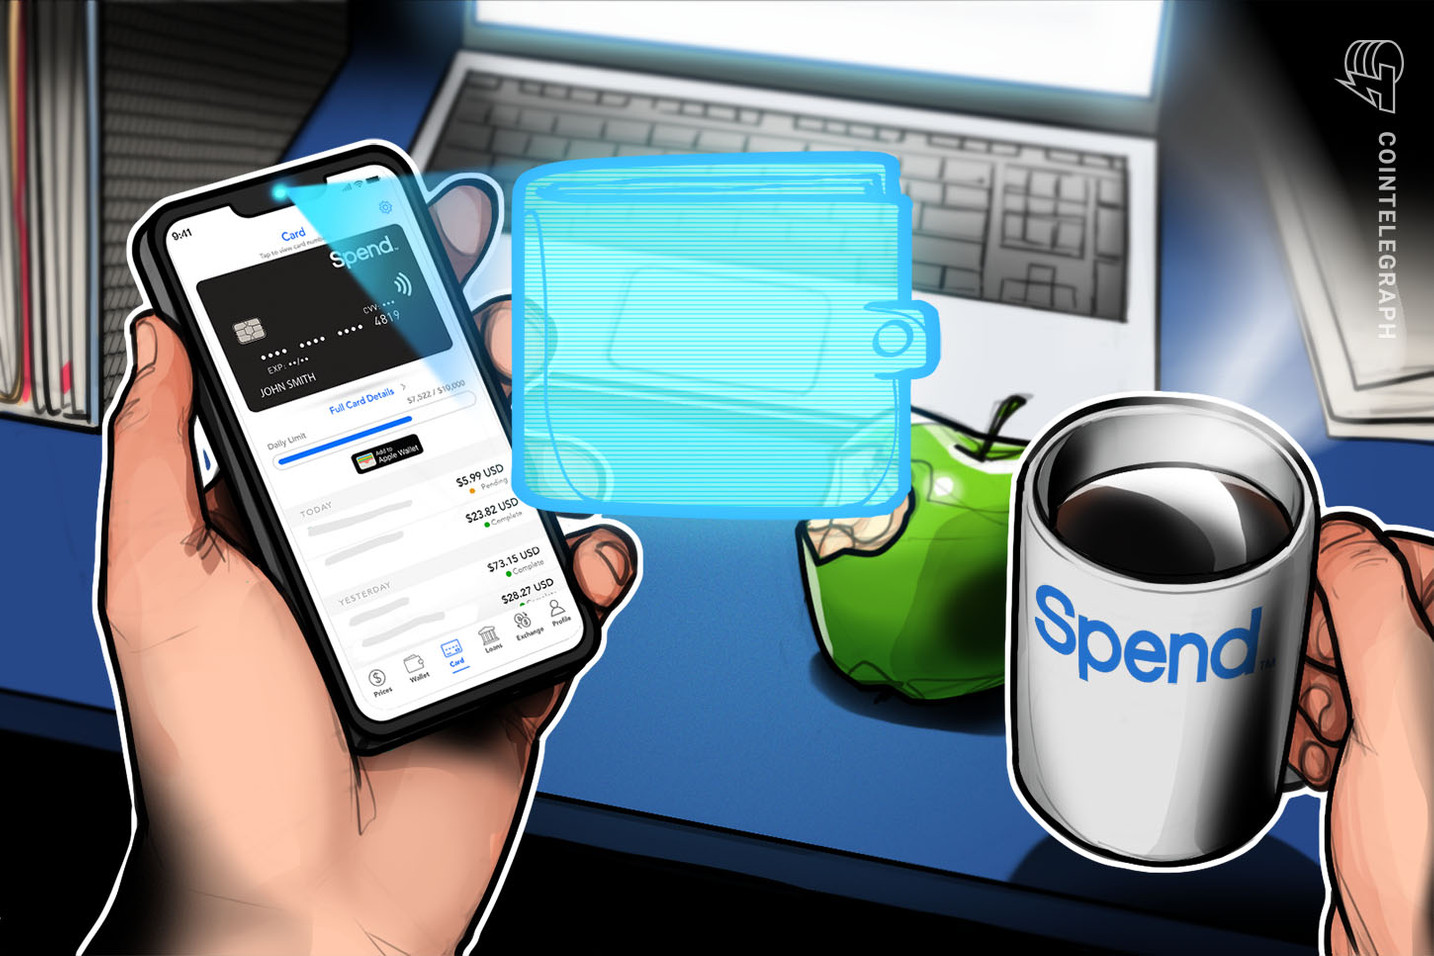 Multicurrency Crypto Wallet Integrates Apple Pay, With Google Pay to Follow Within Weeks